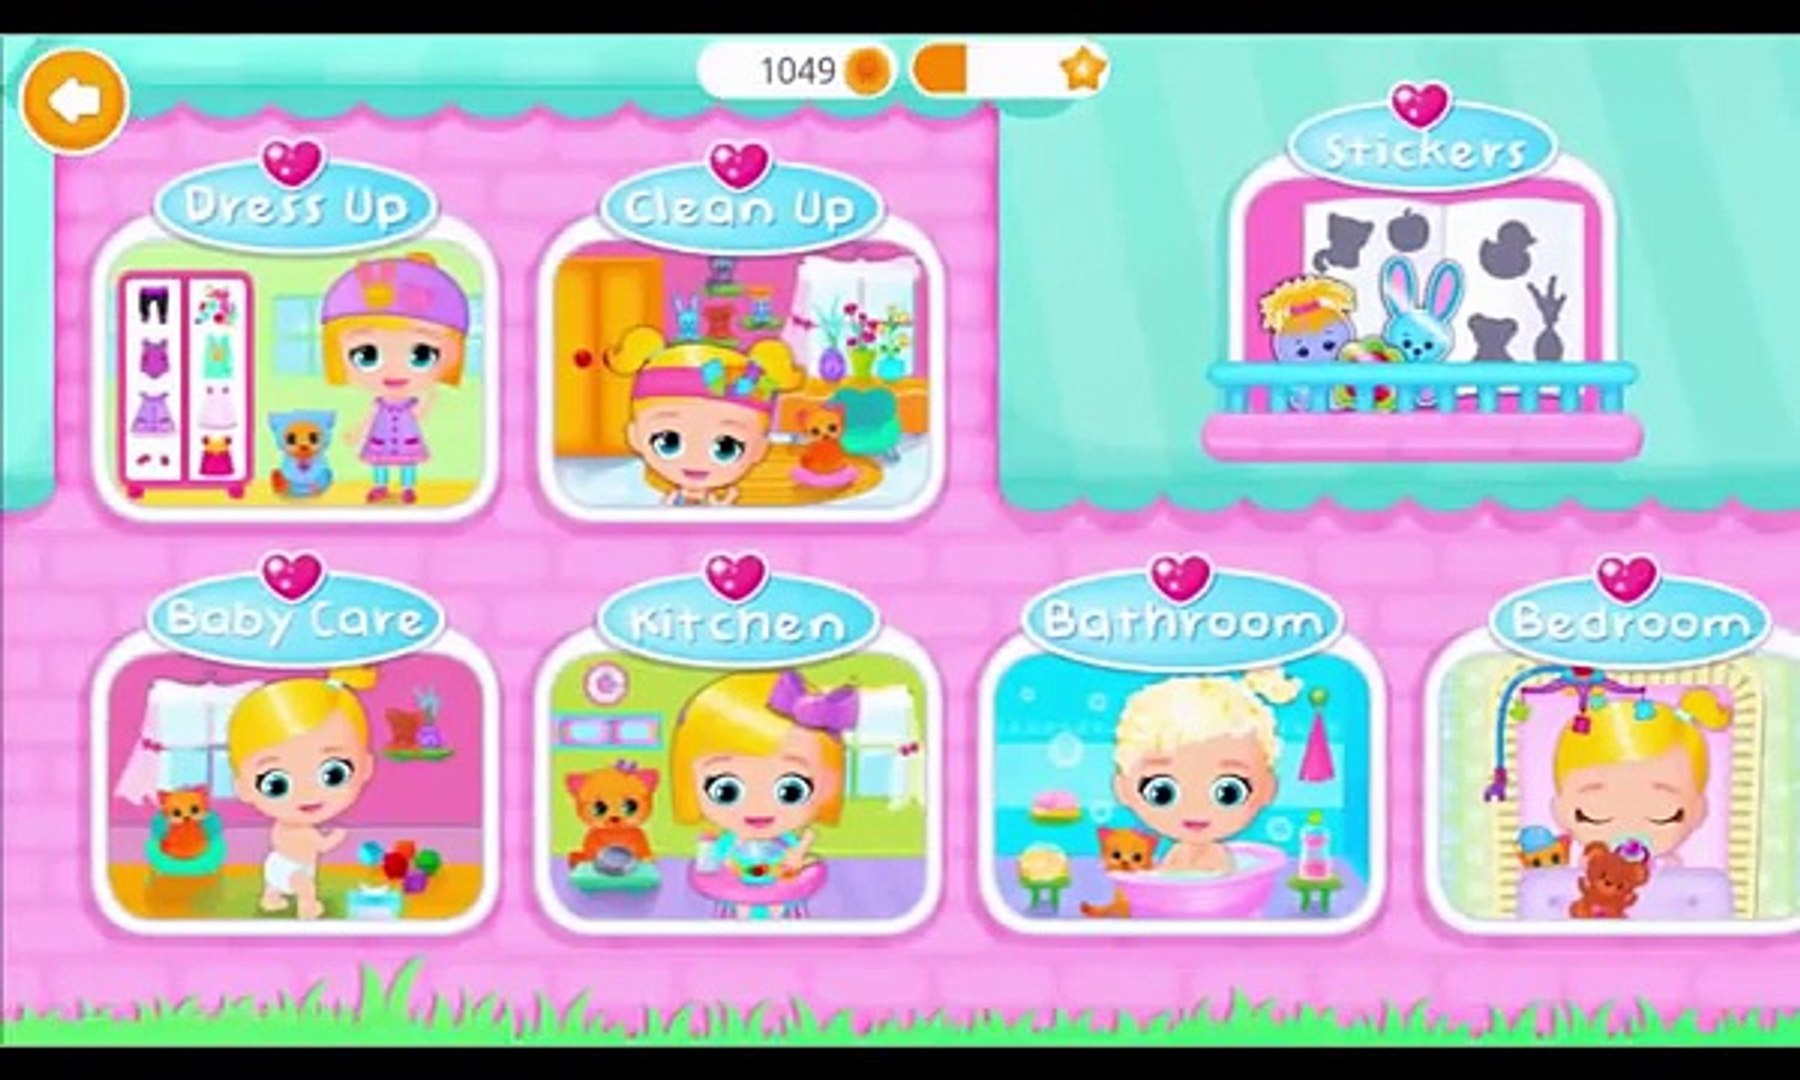 Lily & Kitty Education Funny Games For Kids Newborn Baby Doll House | Kids Games | Android Gamep